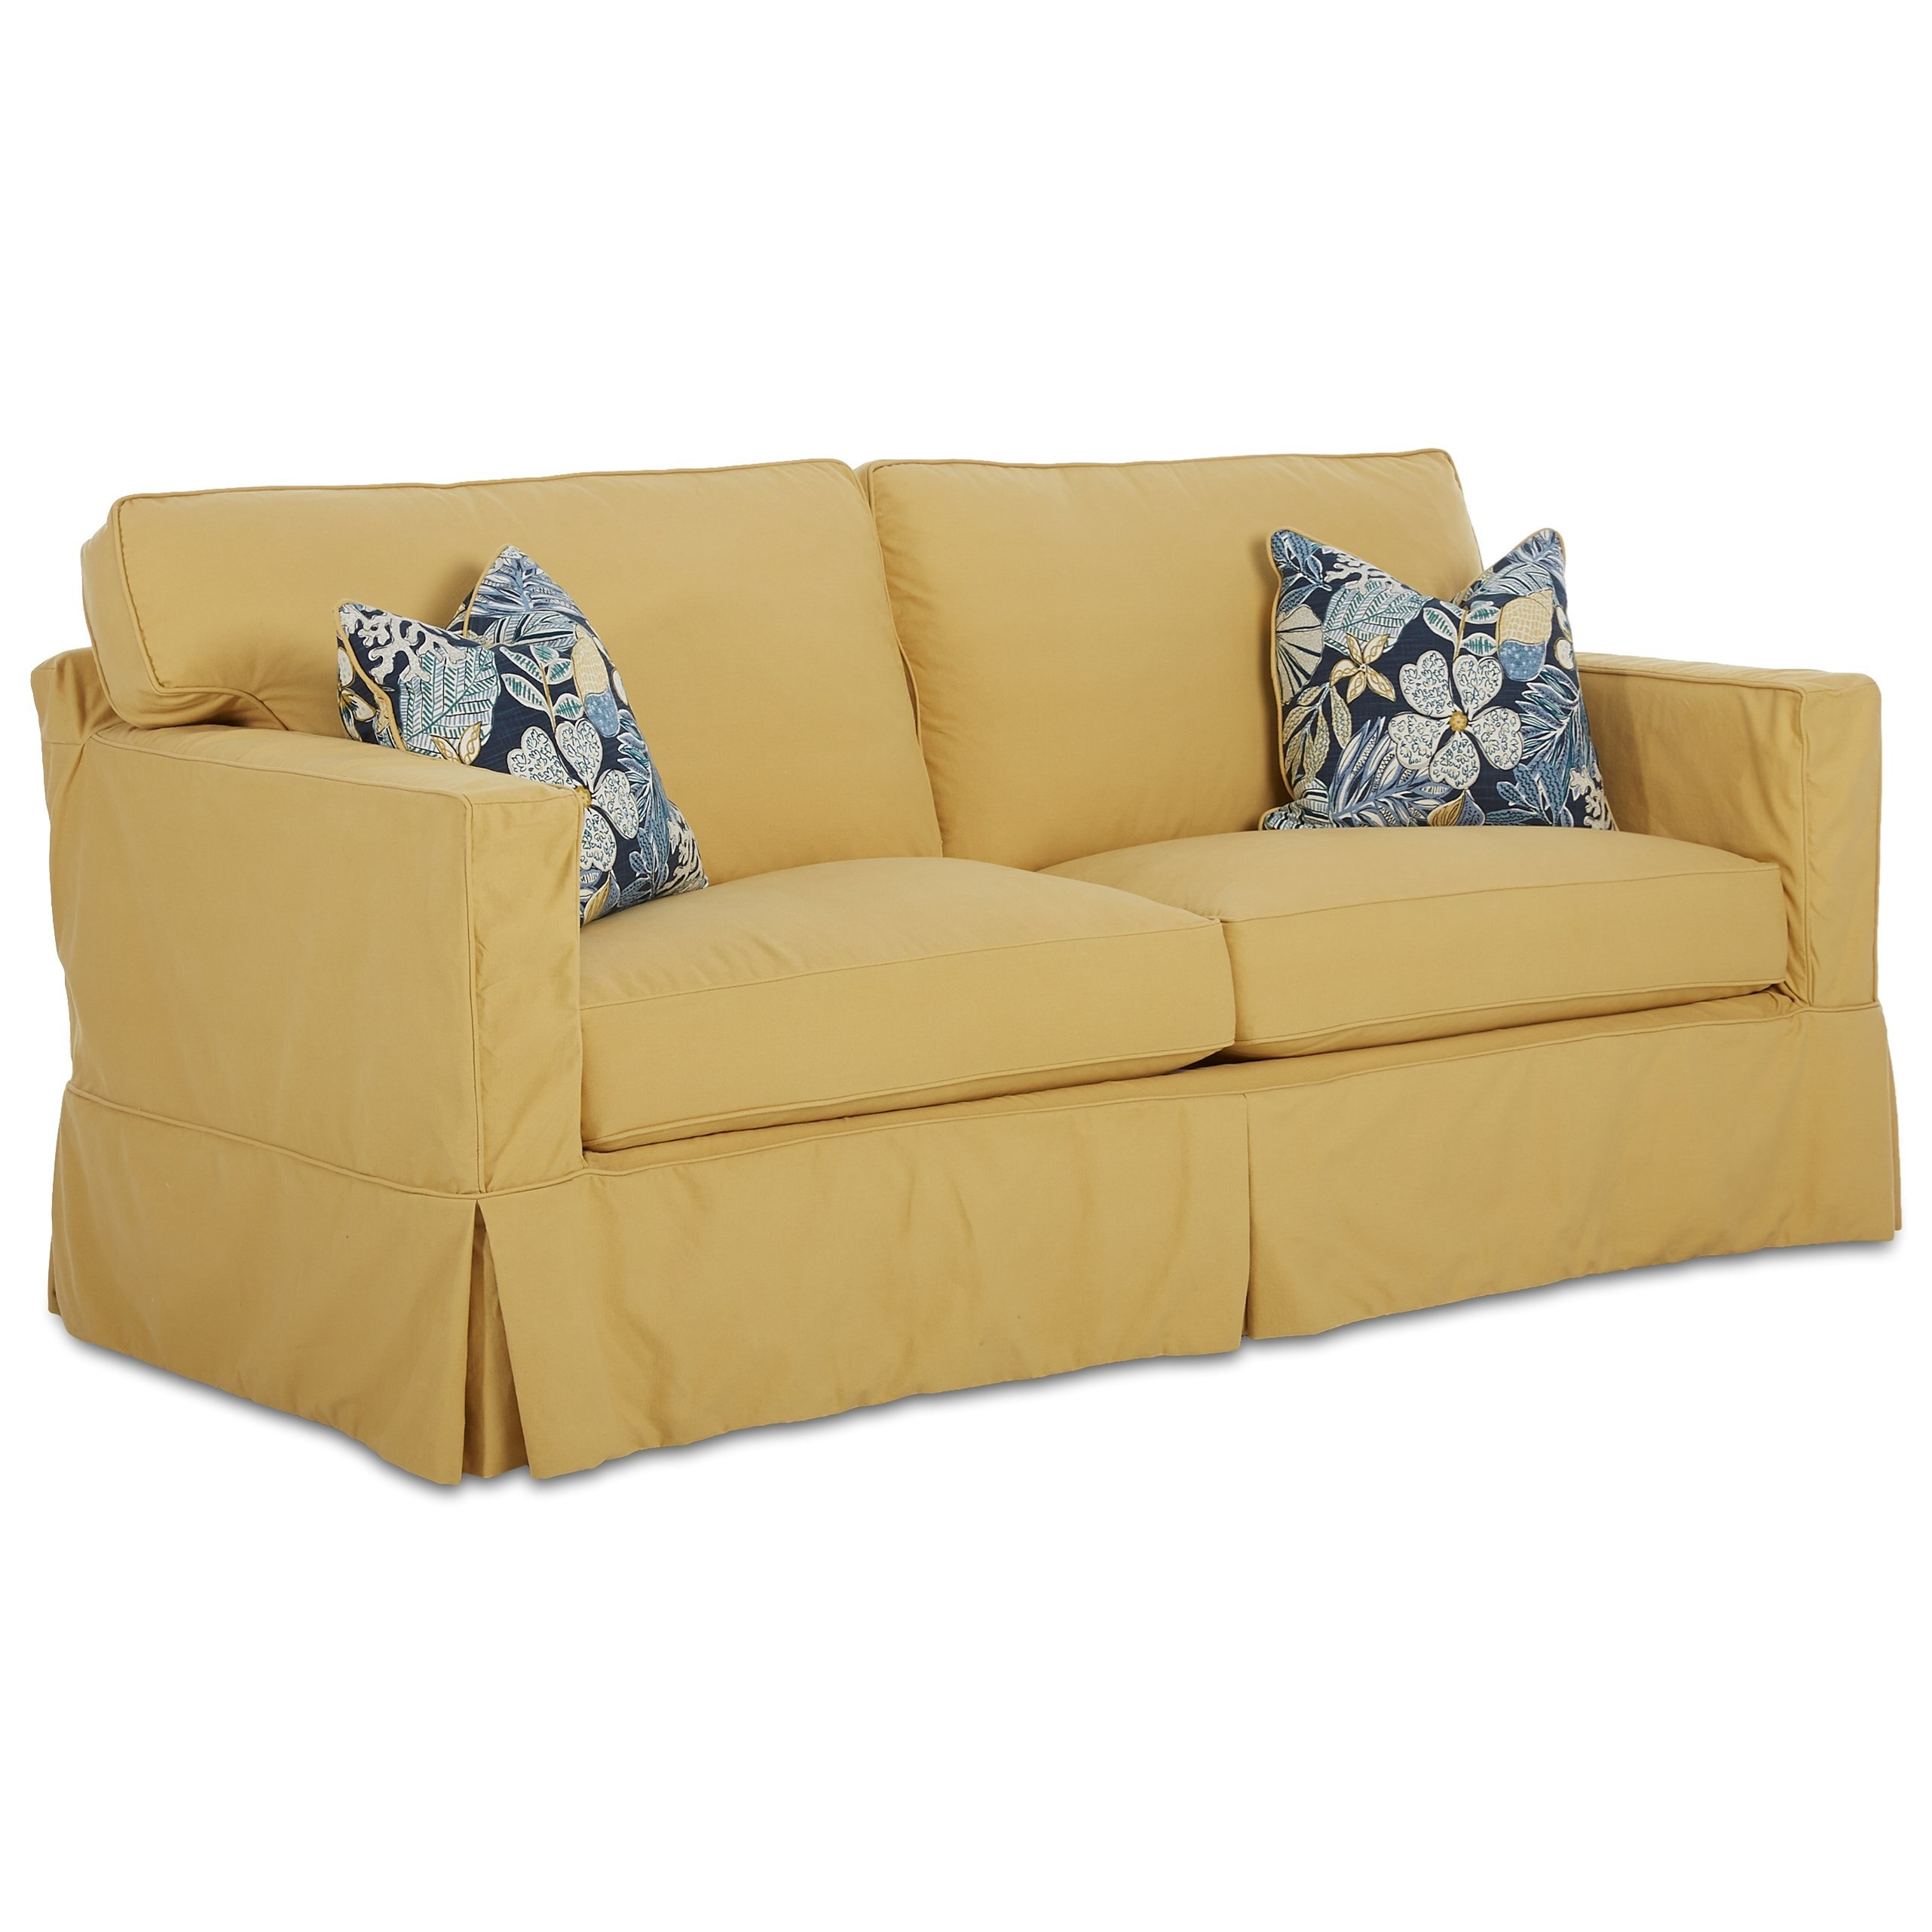 Enso Memory Foam Sofa Sleeper With Slip Cover